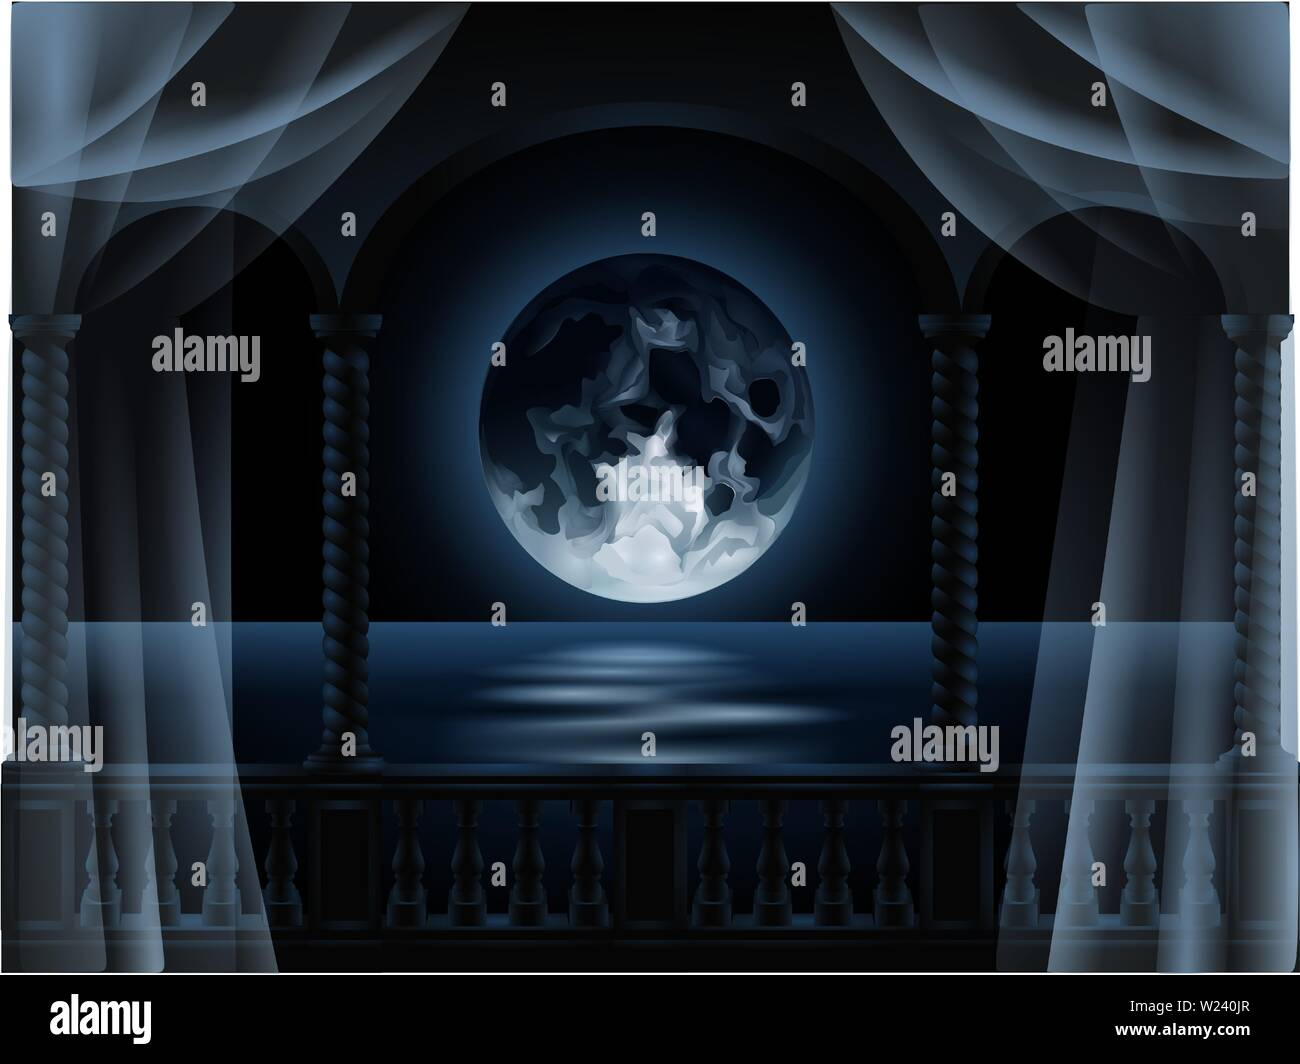 round full moon reflected on the sea seen from the balcony illustration vector - Stock Image